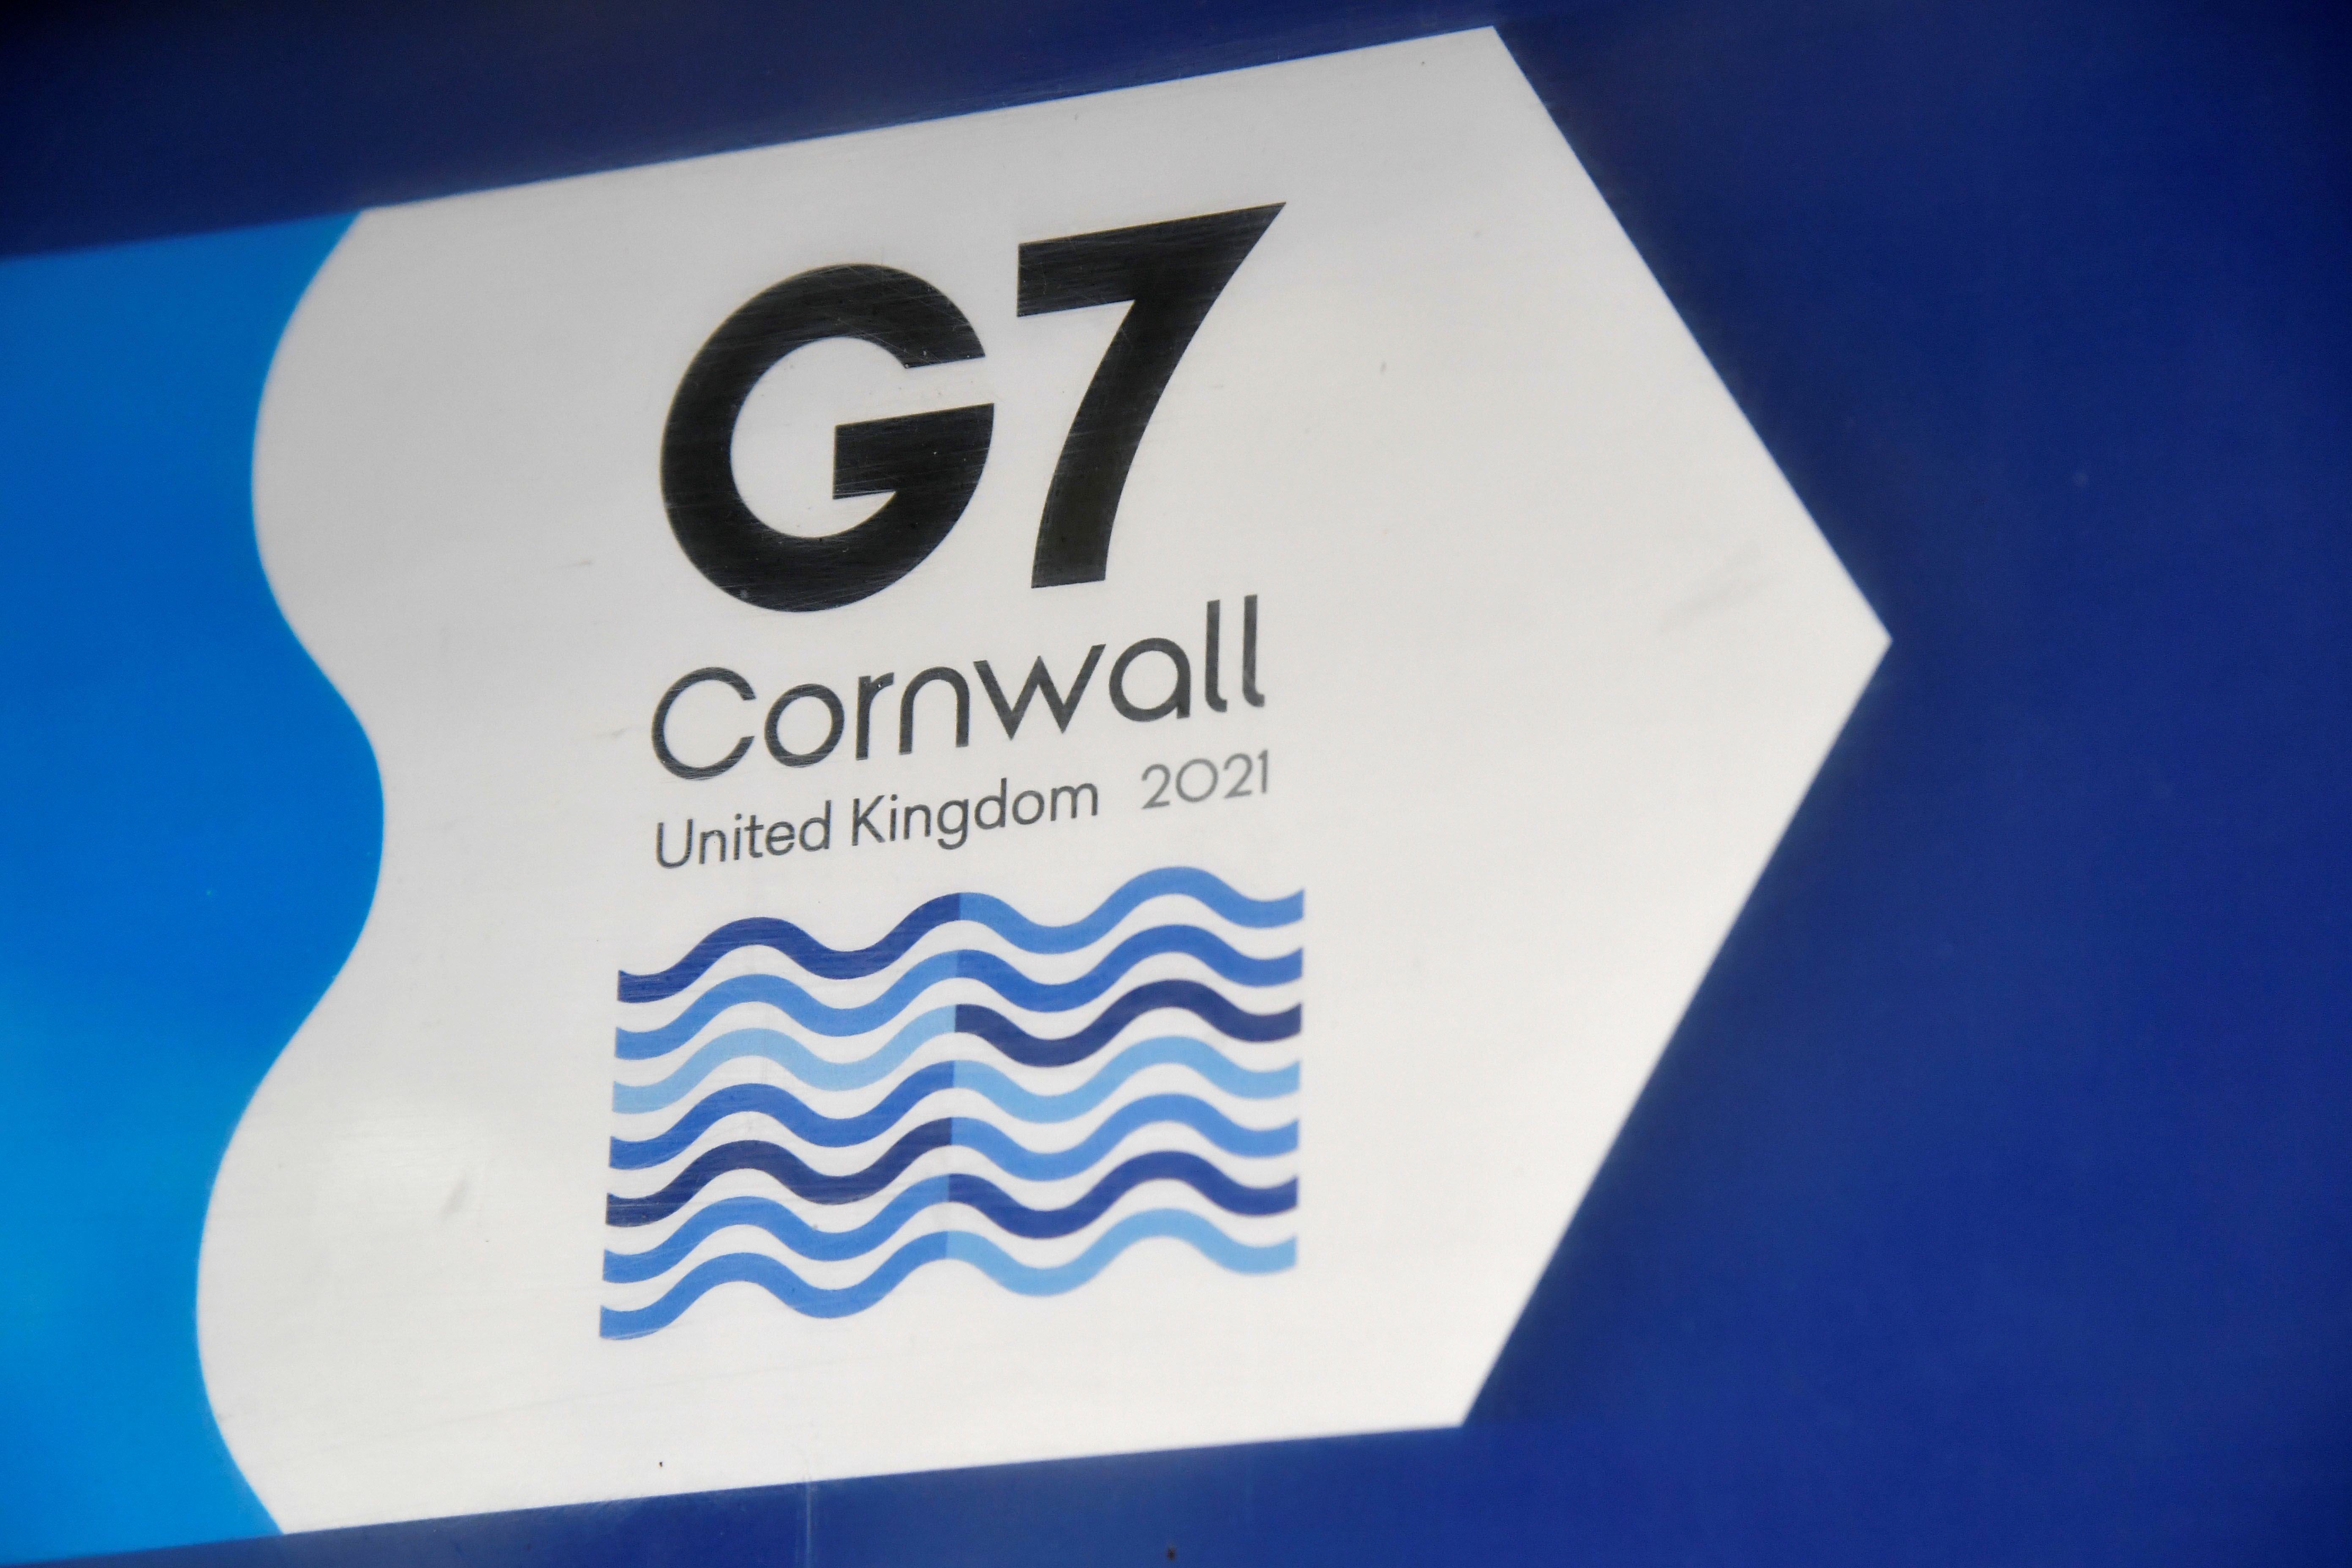 A G7 logo is seen on an information sign near the Carbis Bay hotel resort, where an in-person G7 summit of global leaders is due to take place in June, St Ives, Cornwall, southwest Britain May 24, 2021. Picture taken May 24, 2021. REUTERS/Toby Melville